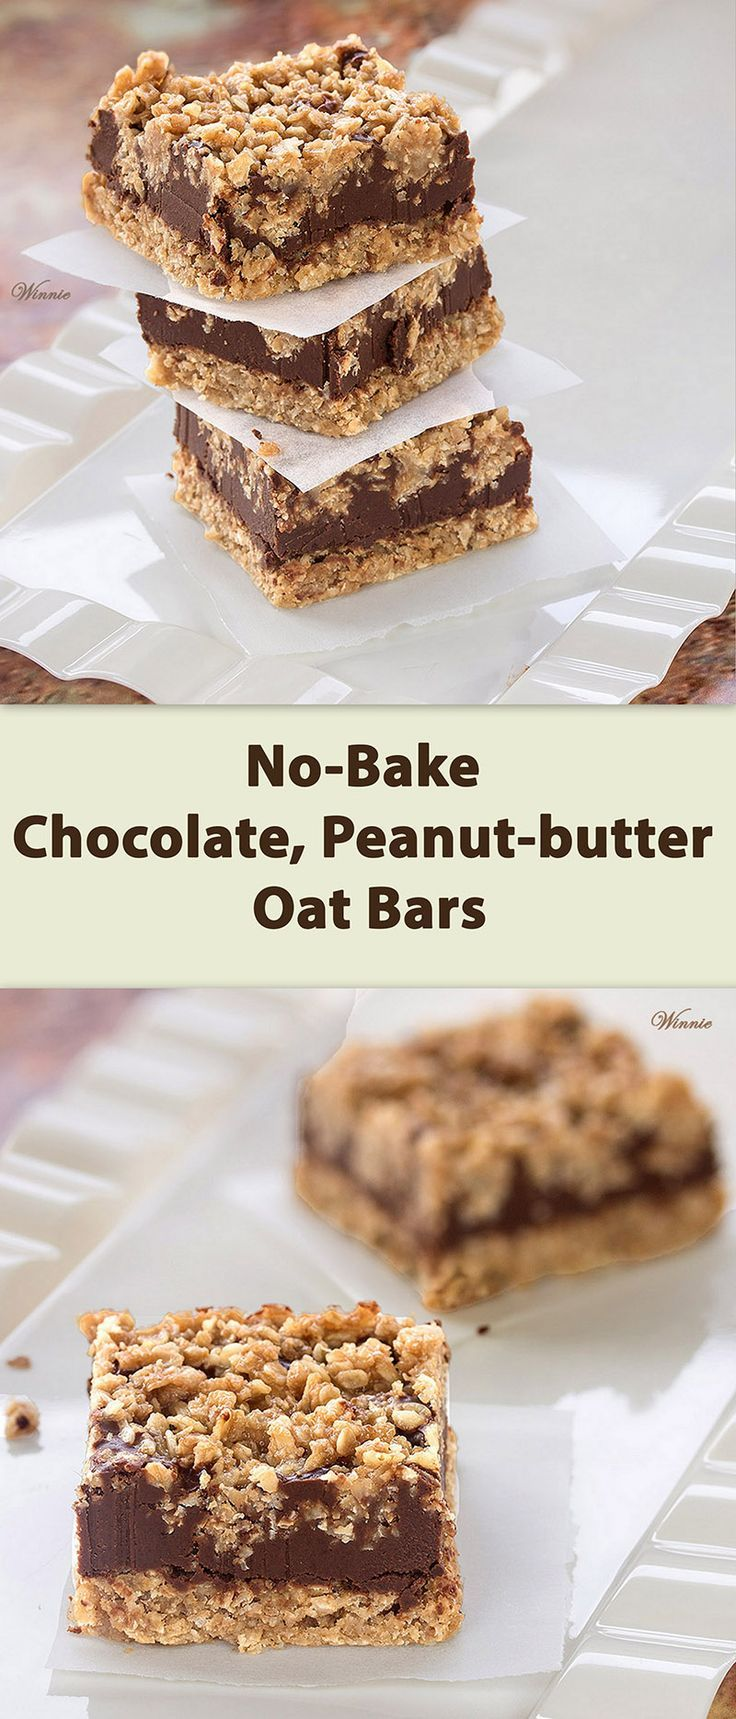 ... images about bars on Pinterest | Cherry pie bars, Bar and Oat bars